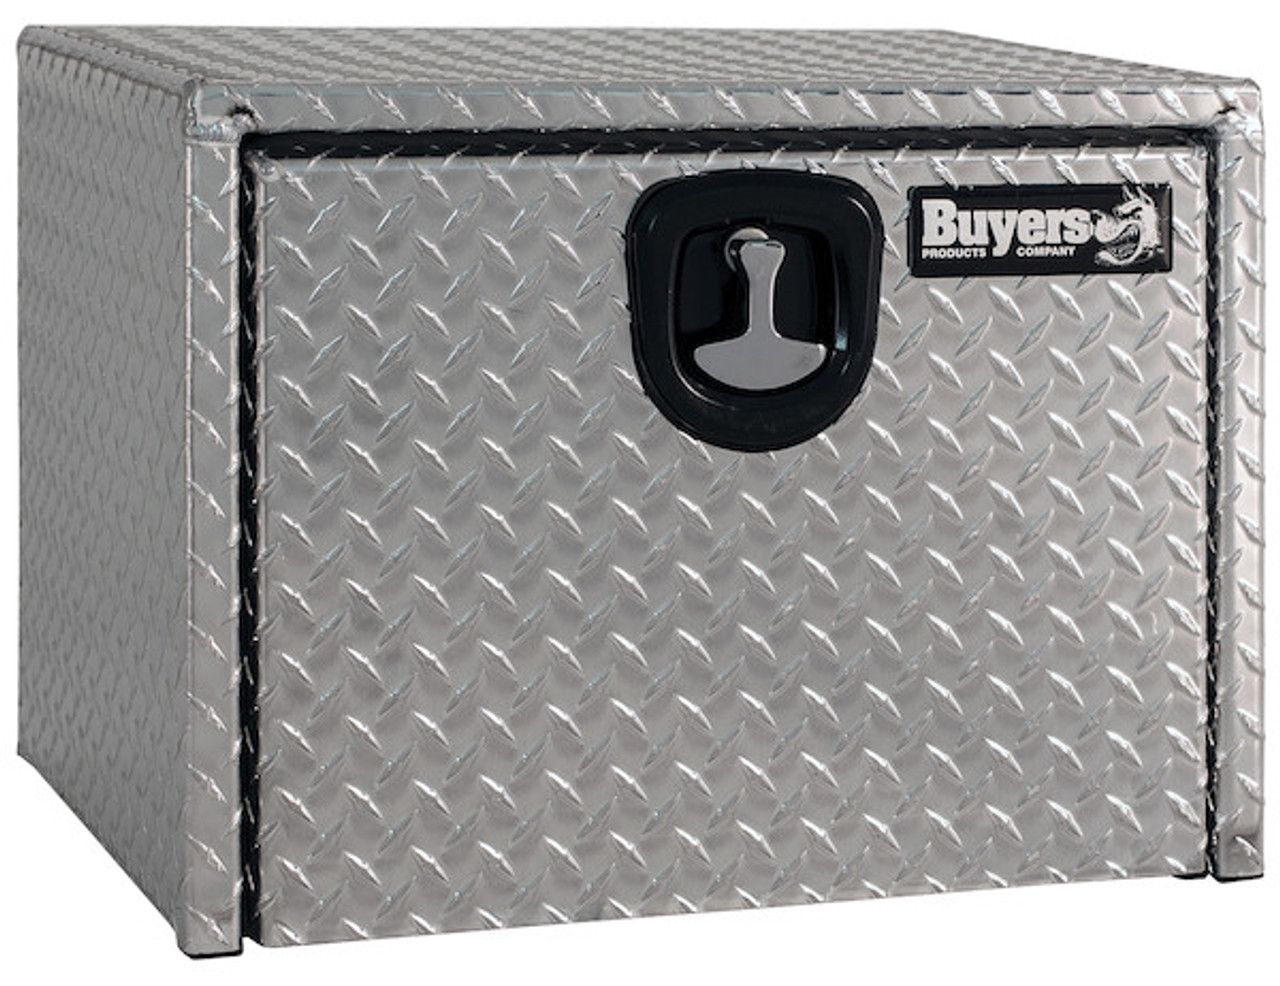 "1735103 BUYERS PRODUCTS DIAMOND TREAD ALUMINUM UNDERBODY TRUCK TOOLBOX WITH 3-PT. LATCH 18""Hx18""Dx30""W"